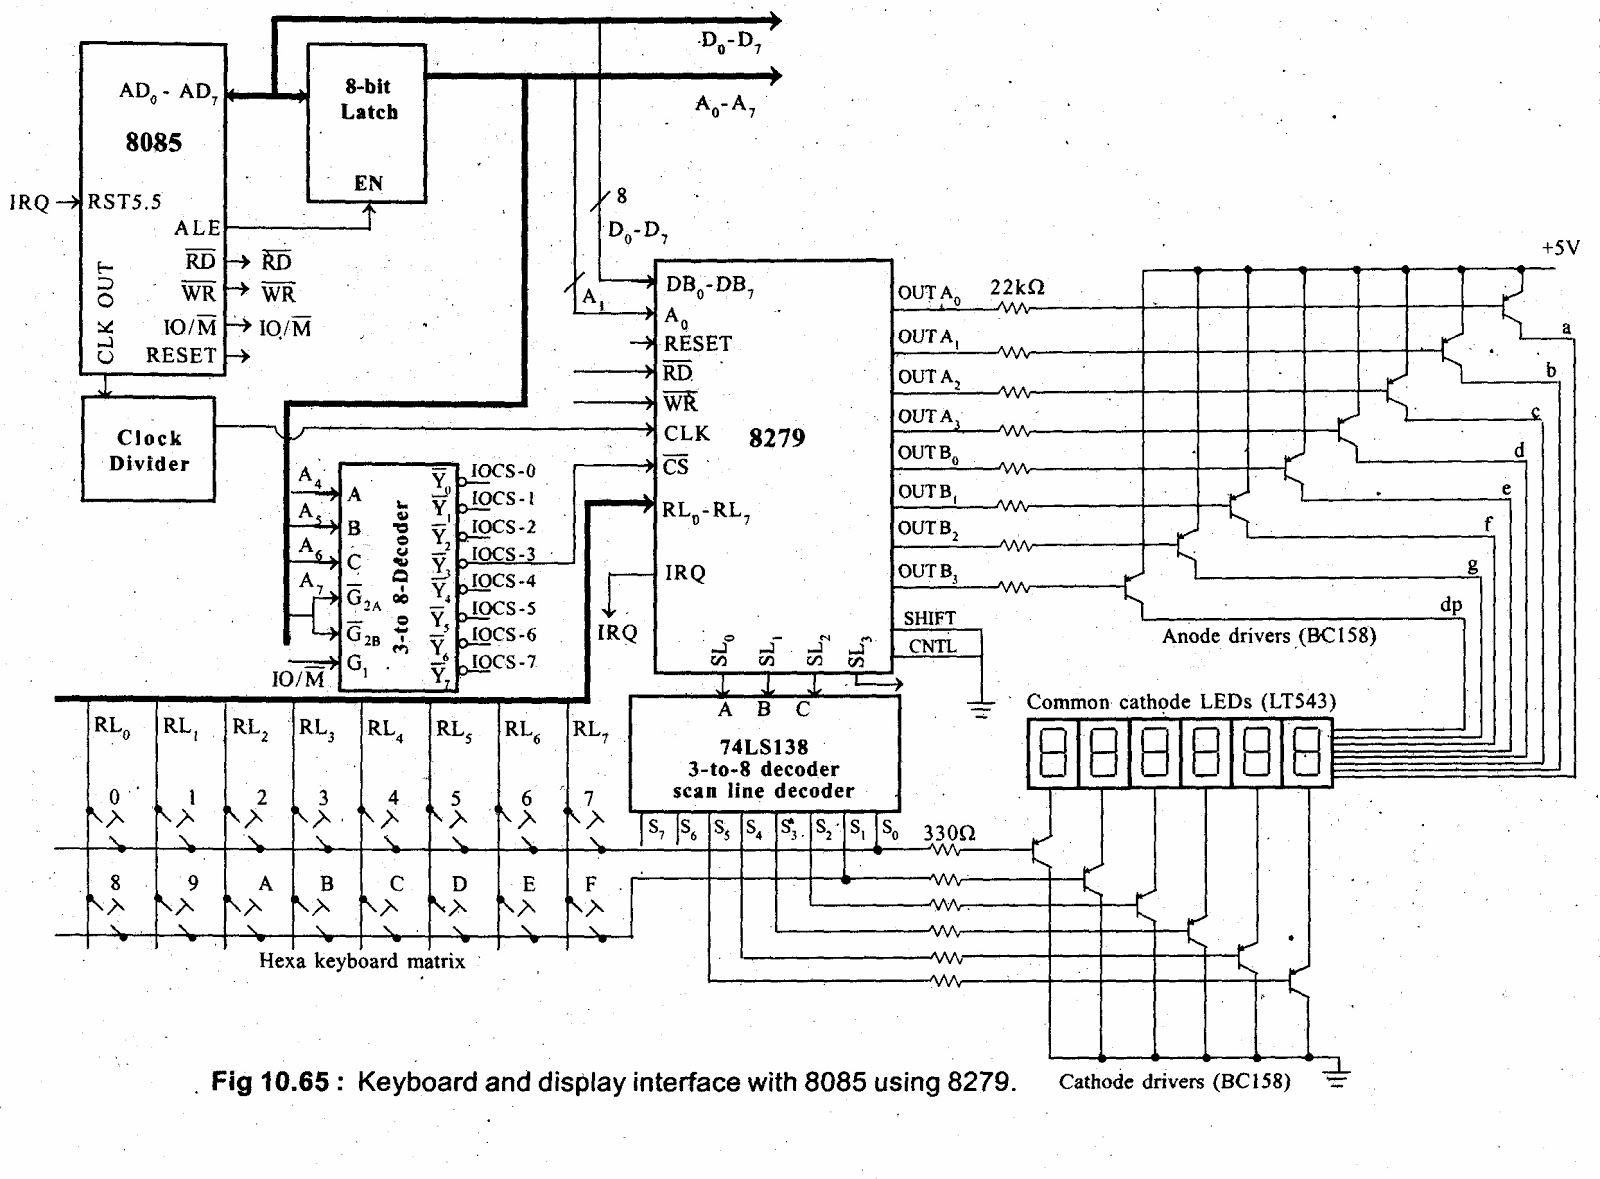 A Media To Get All Datas In Electrical Science Keyboard And Schematic Diagram Typical Hexa 7 Segment Led Display Interfacing Circuit Using 8279 Is Shown